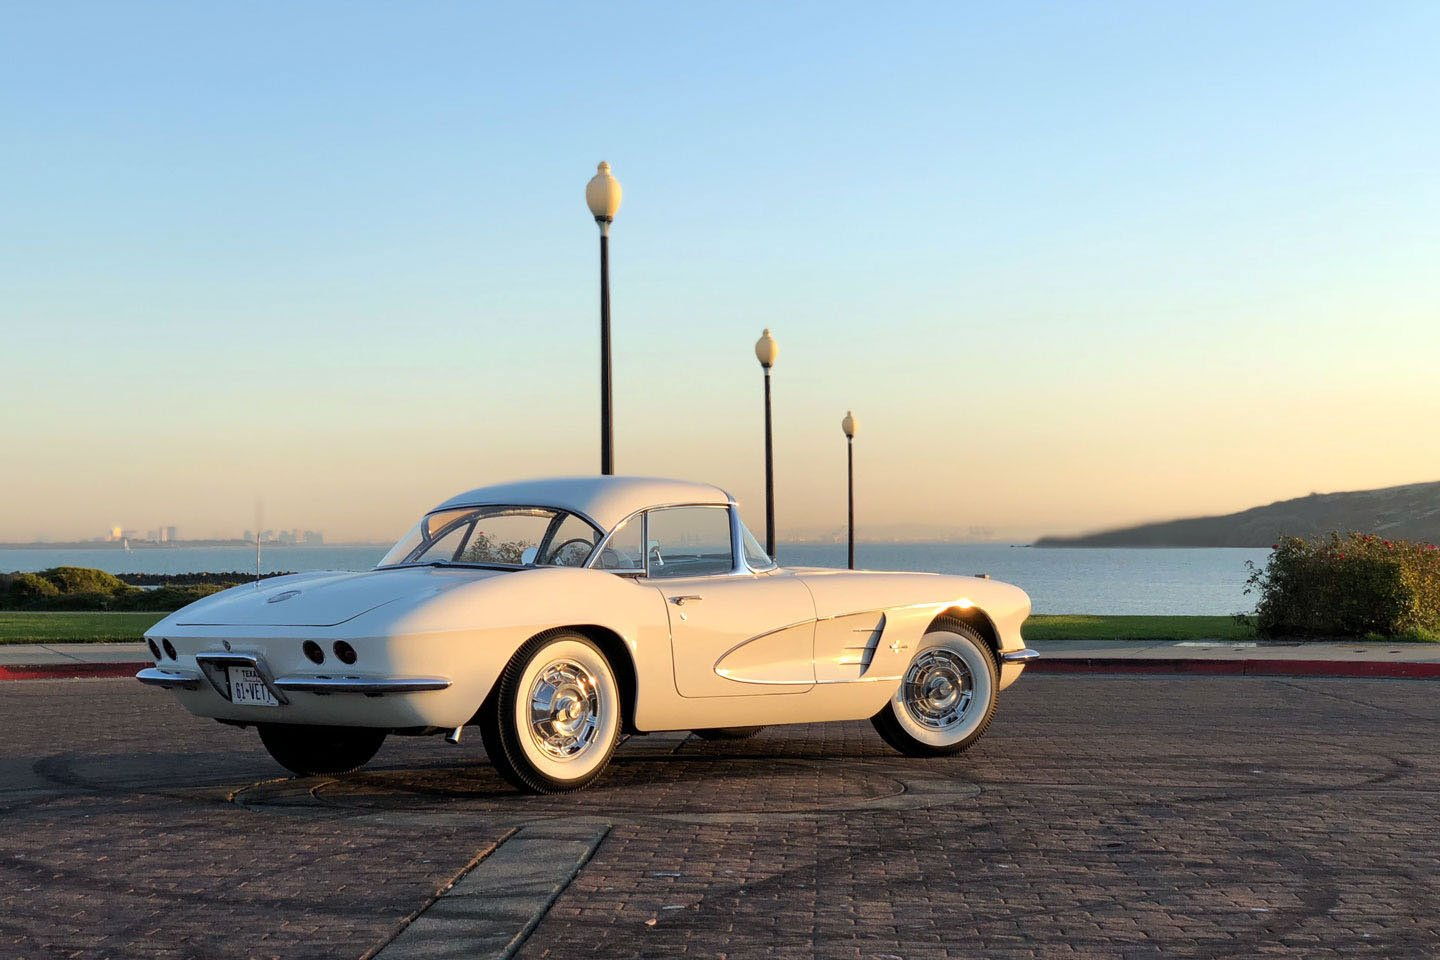 After 56 Years, This C1 Corvette Found a New Home In Germany